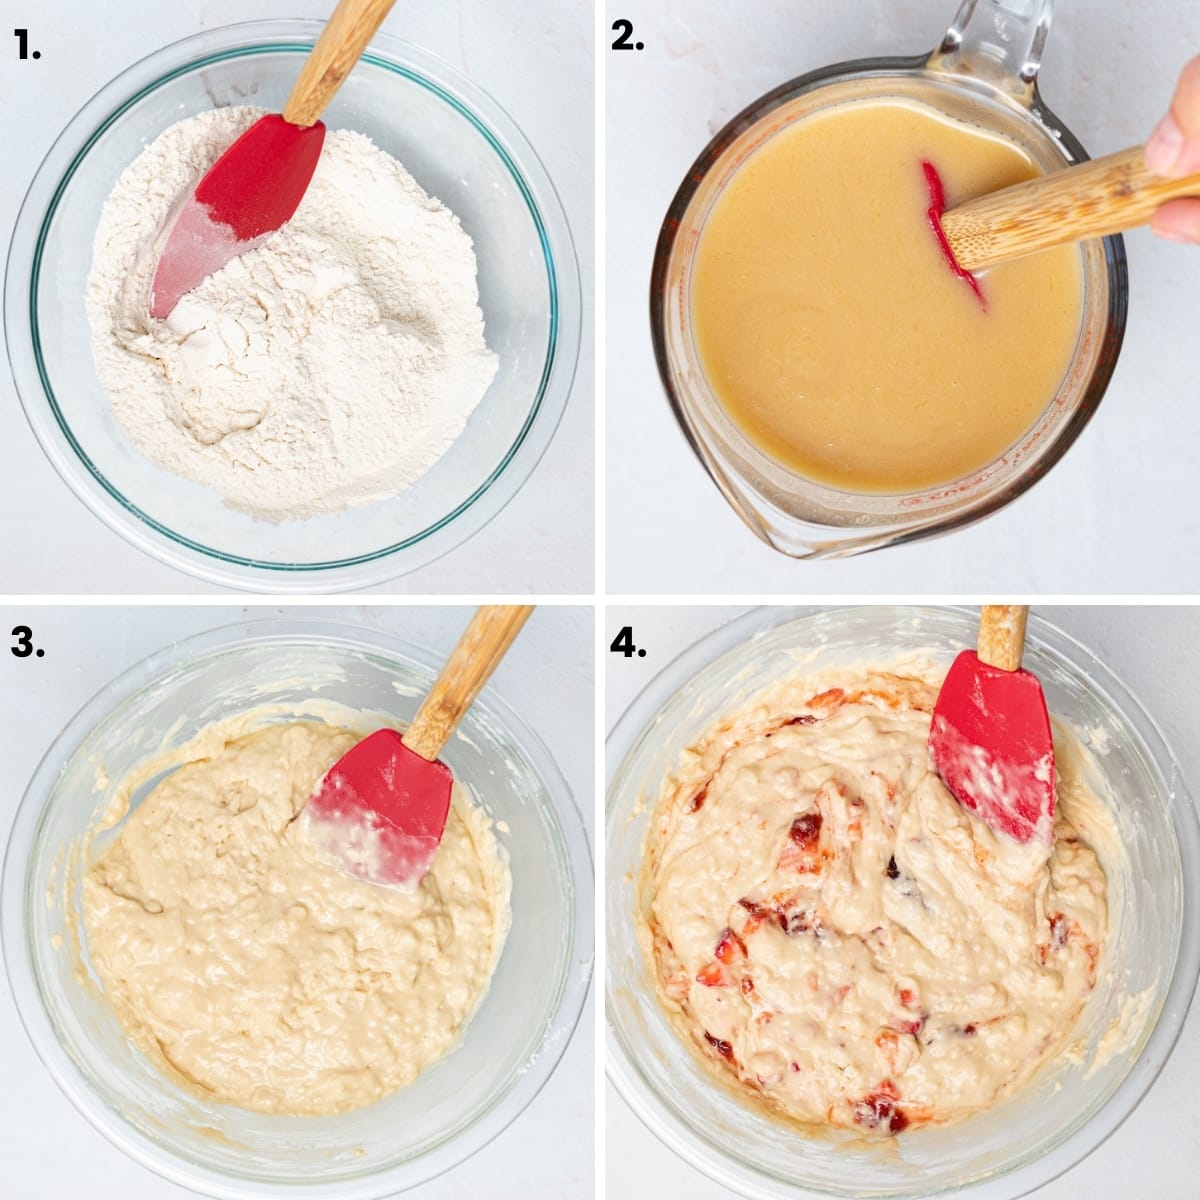 how to make strawberry muffins as per the written instructions